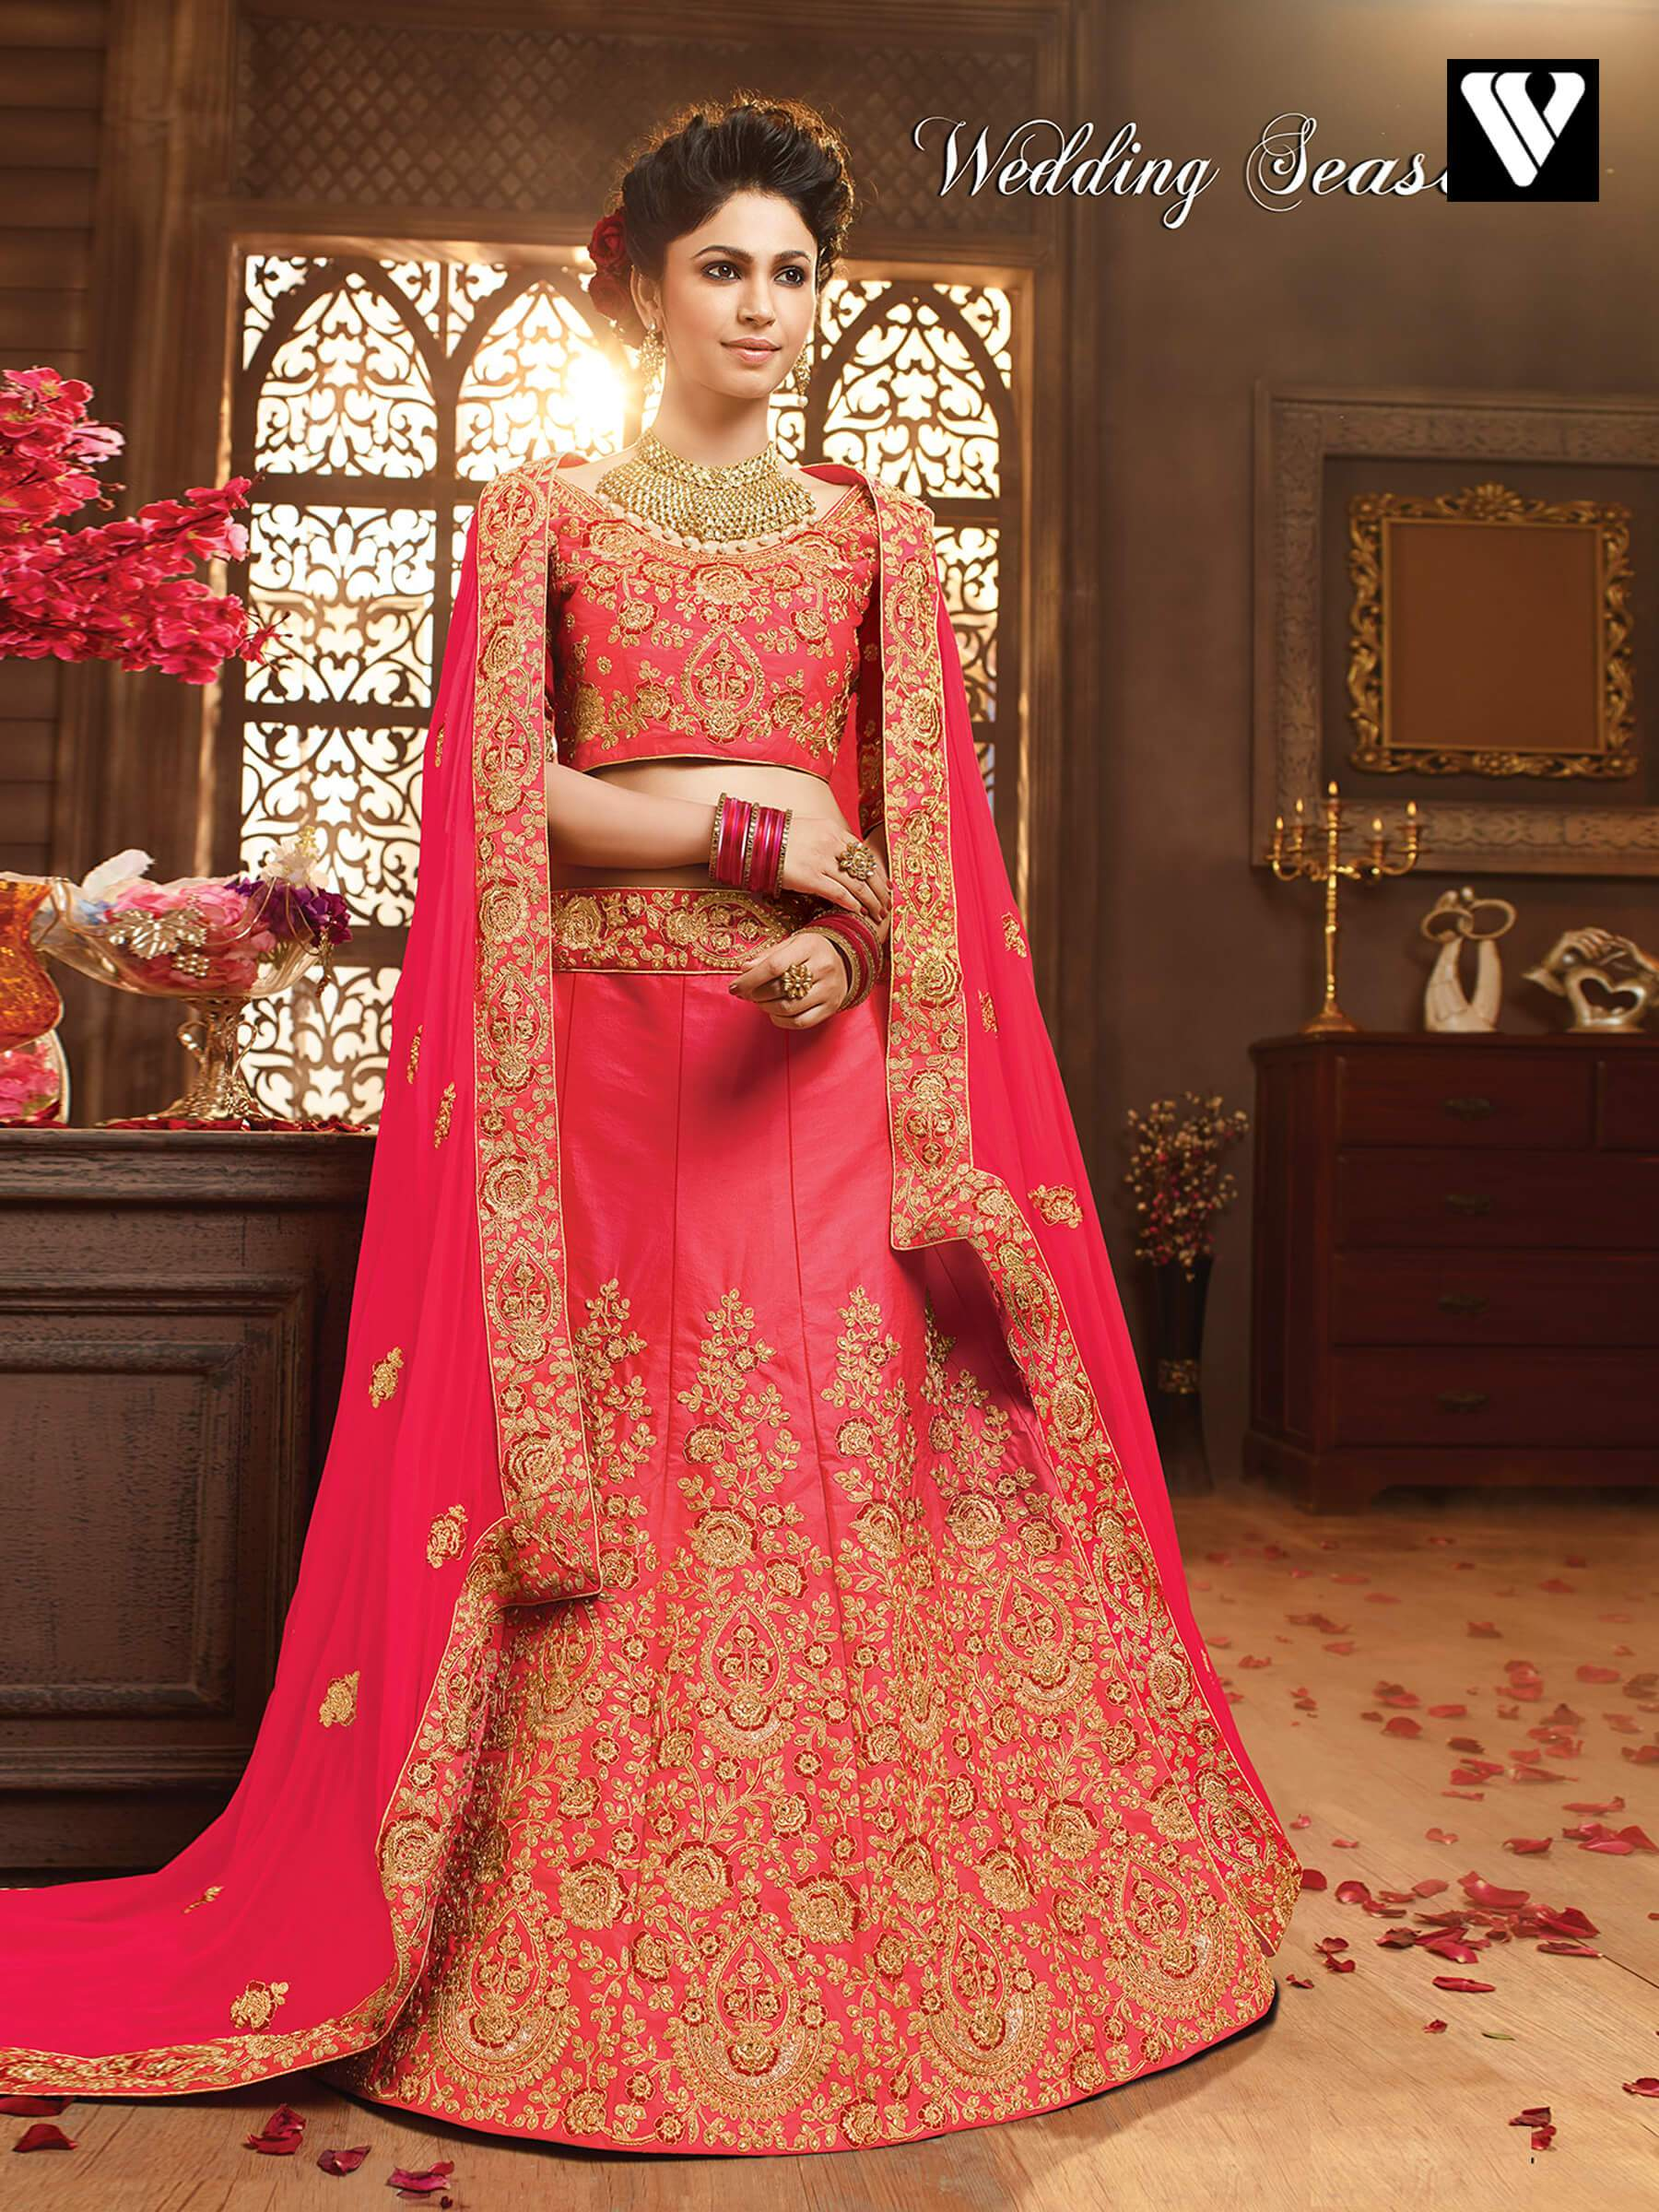 b6efc2dcd9 Buy Pink Art Silk Wedding Lehenga Choli with Dupatta Online ...